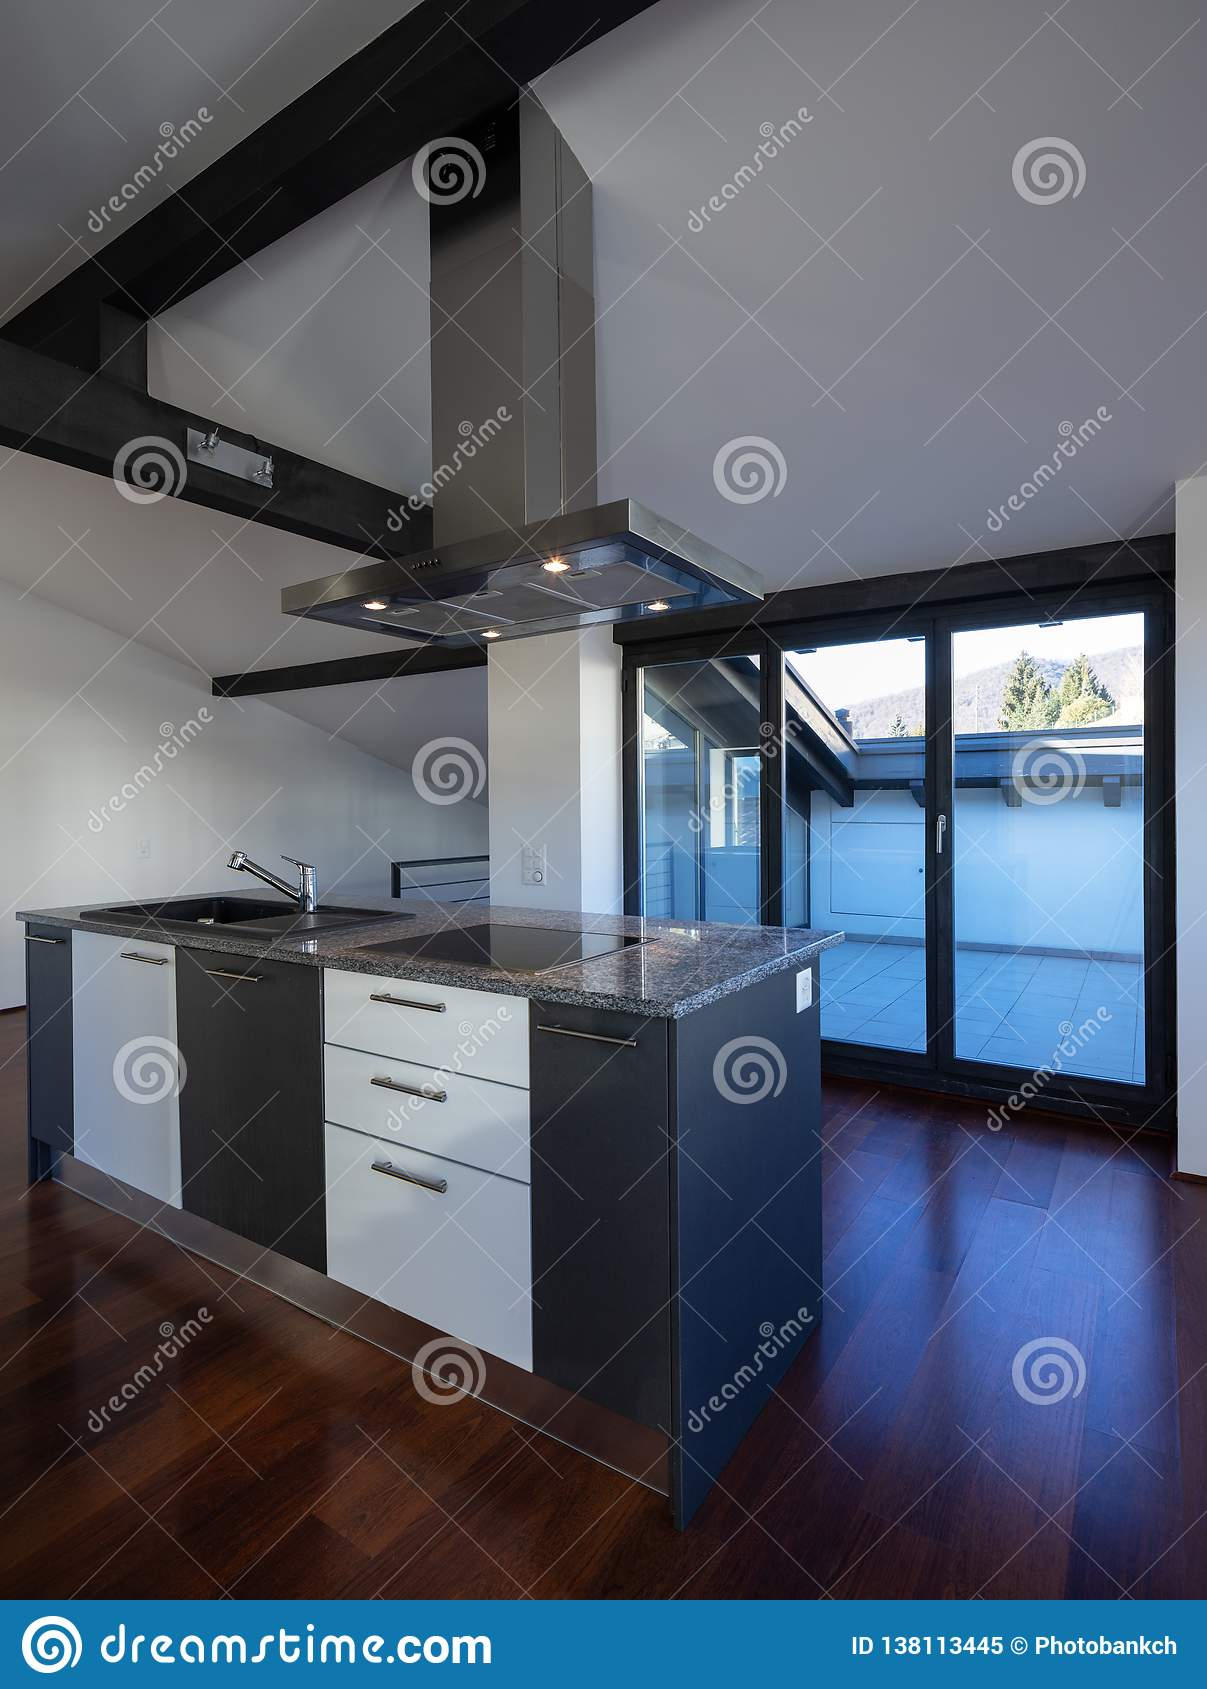 Interior Of A Modern Kitchen In Old House Stock Image Island 138113445